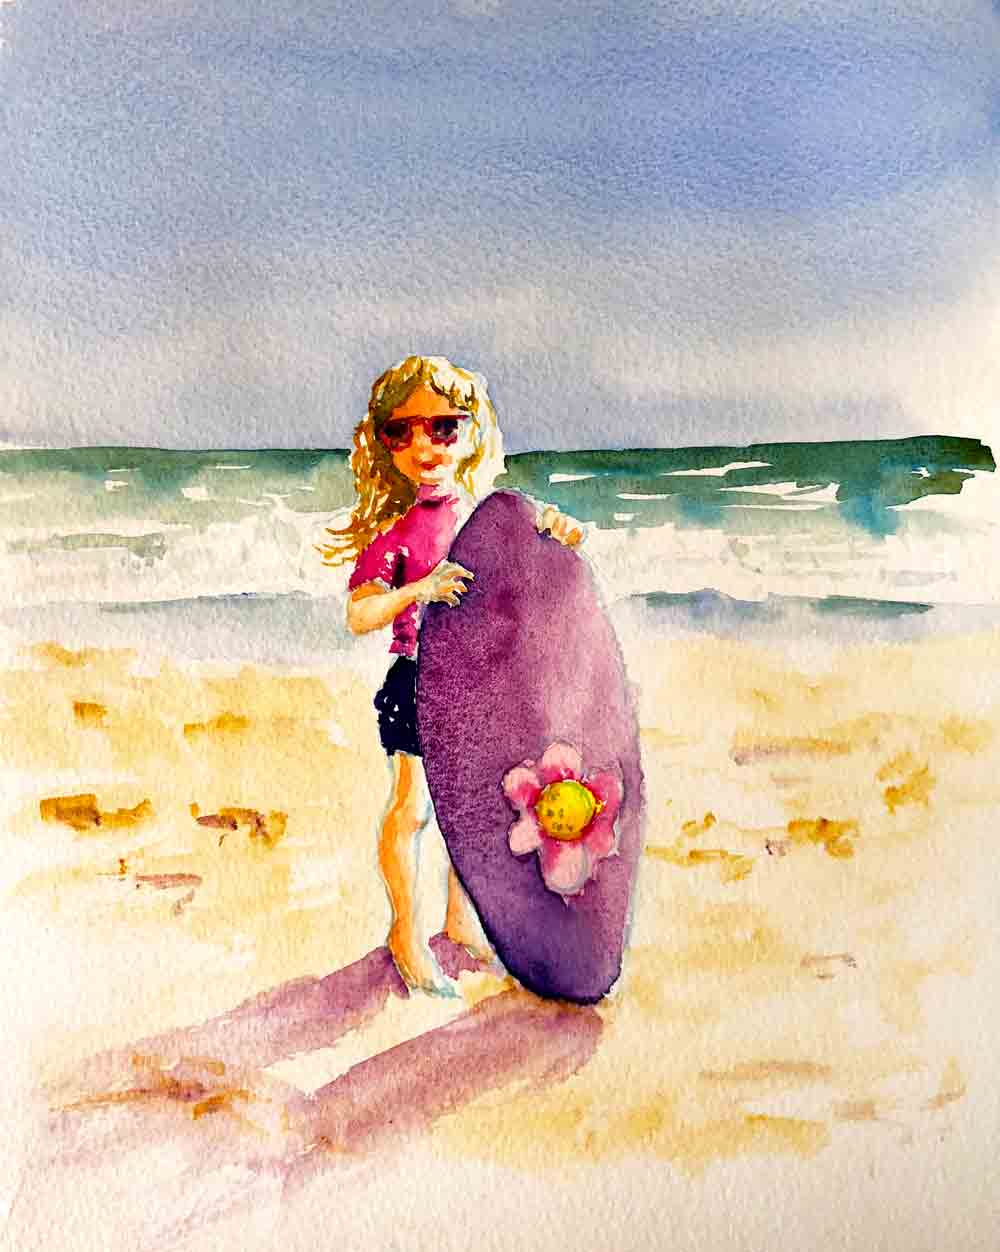 Watercolour-Kids-1-Surfer-Girl-photo-kw.jpg